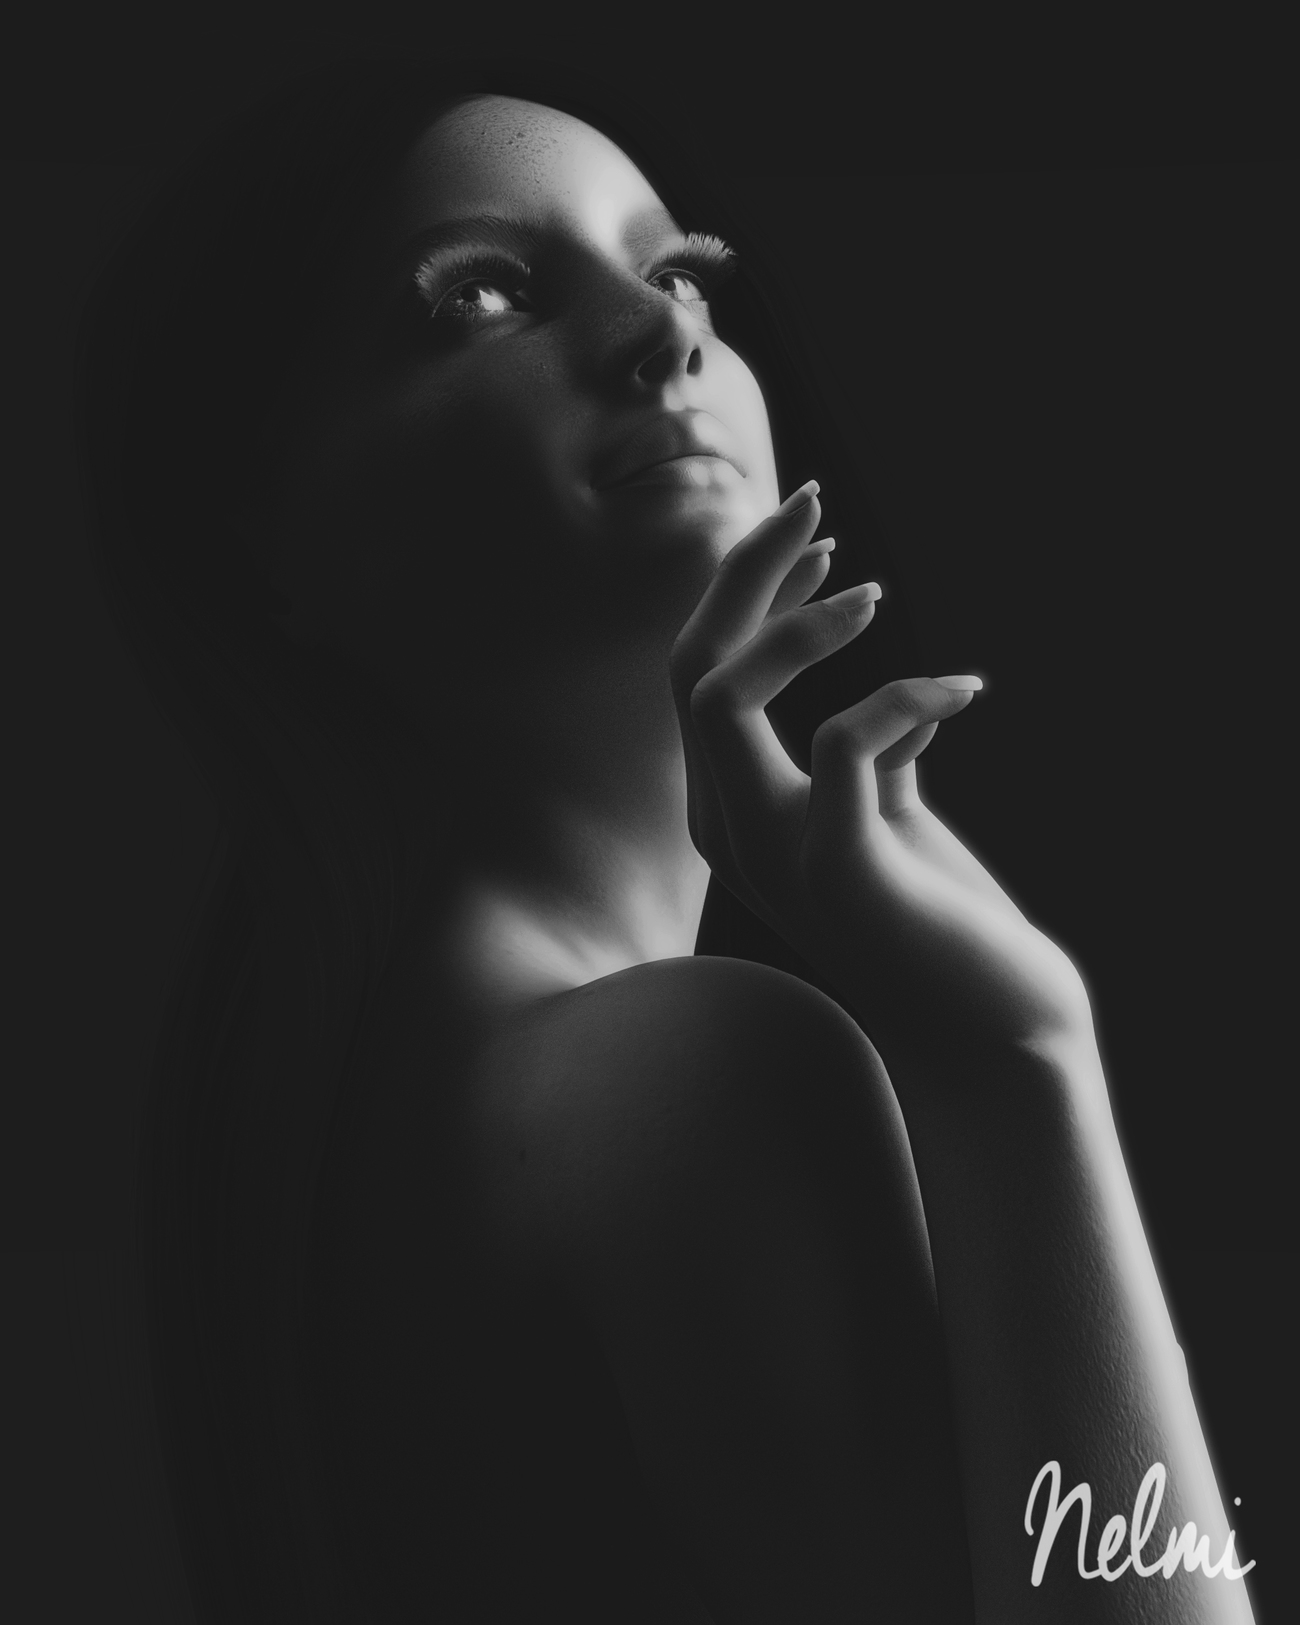 Black and White Beauty by nelmi